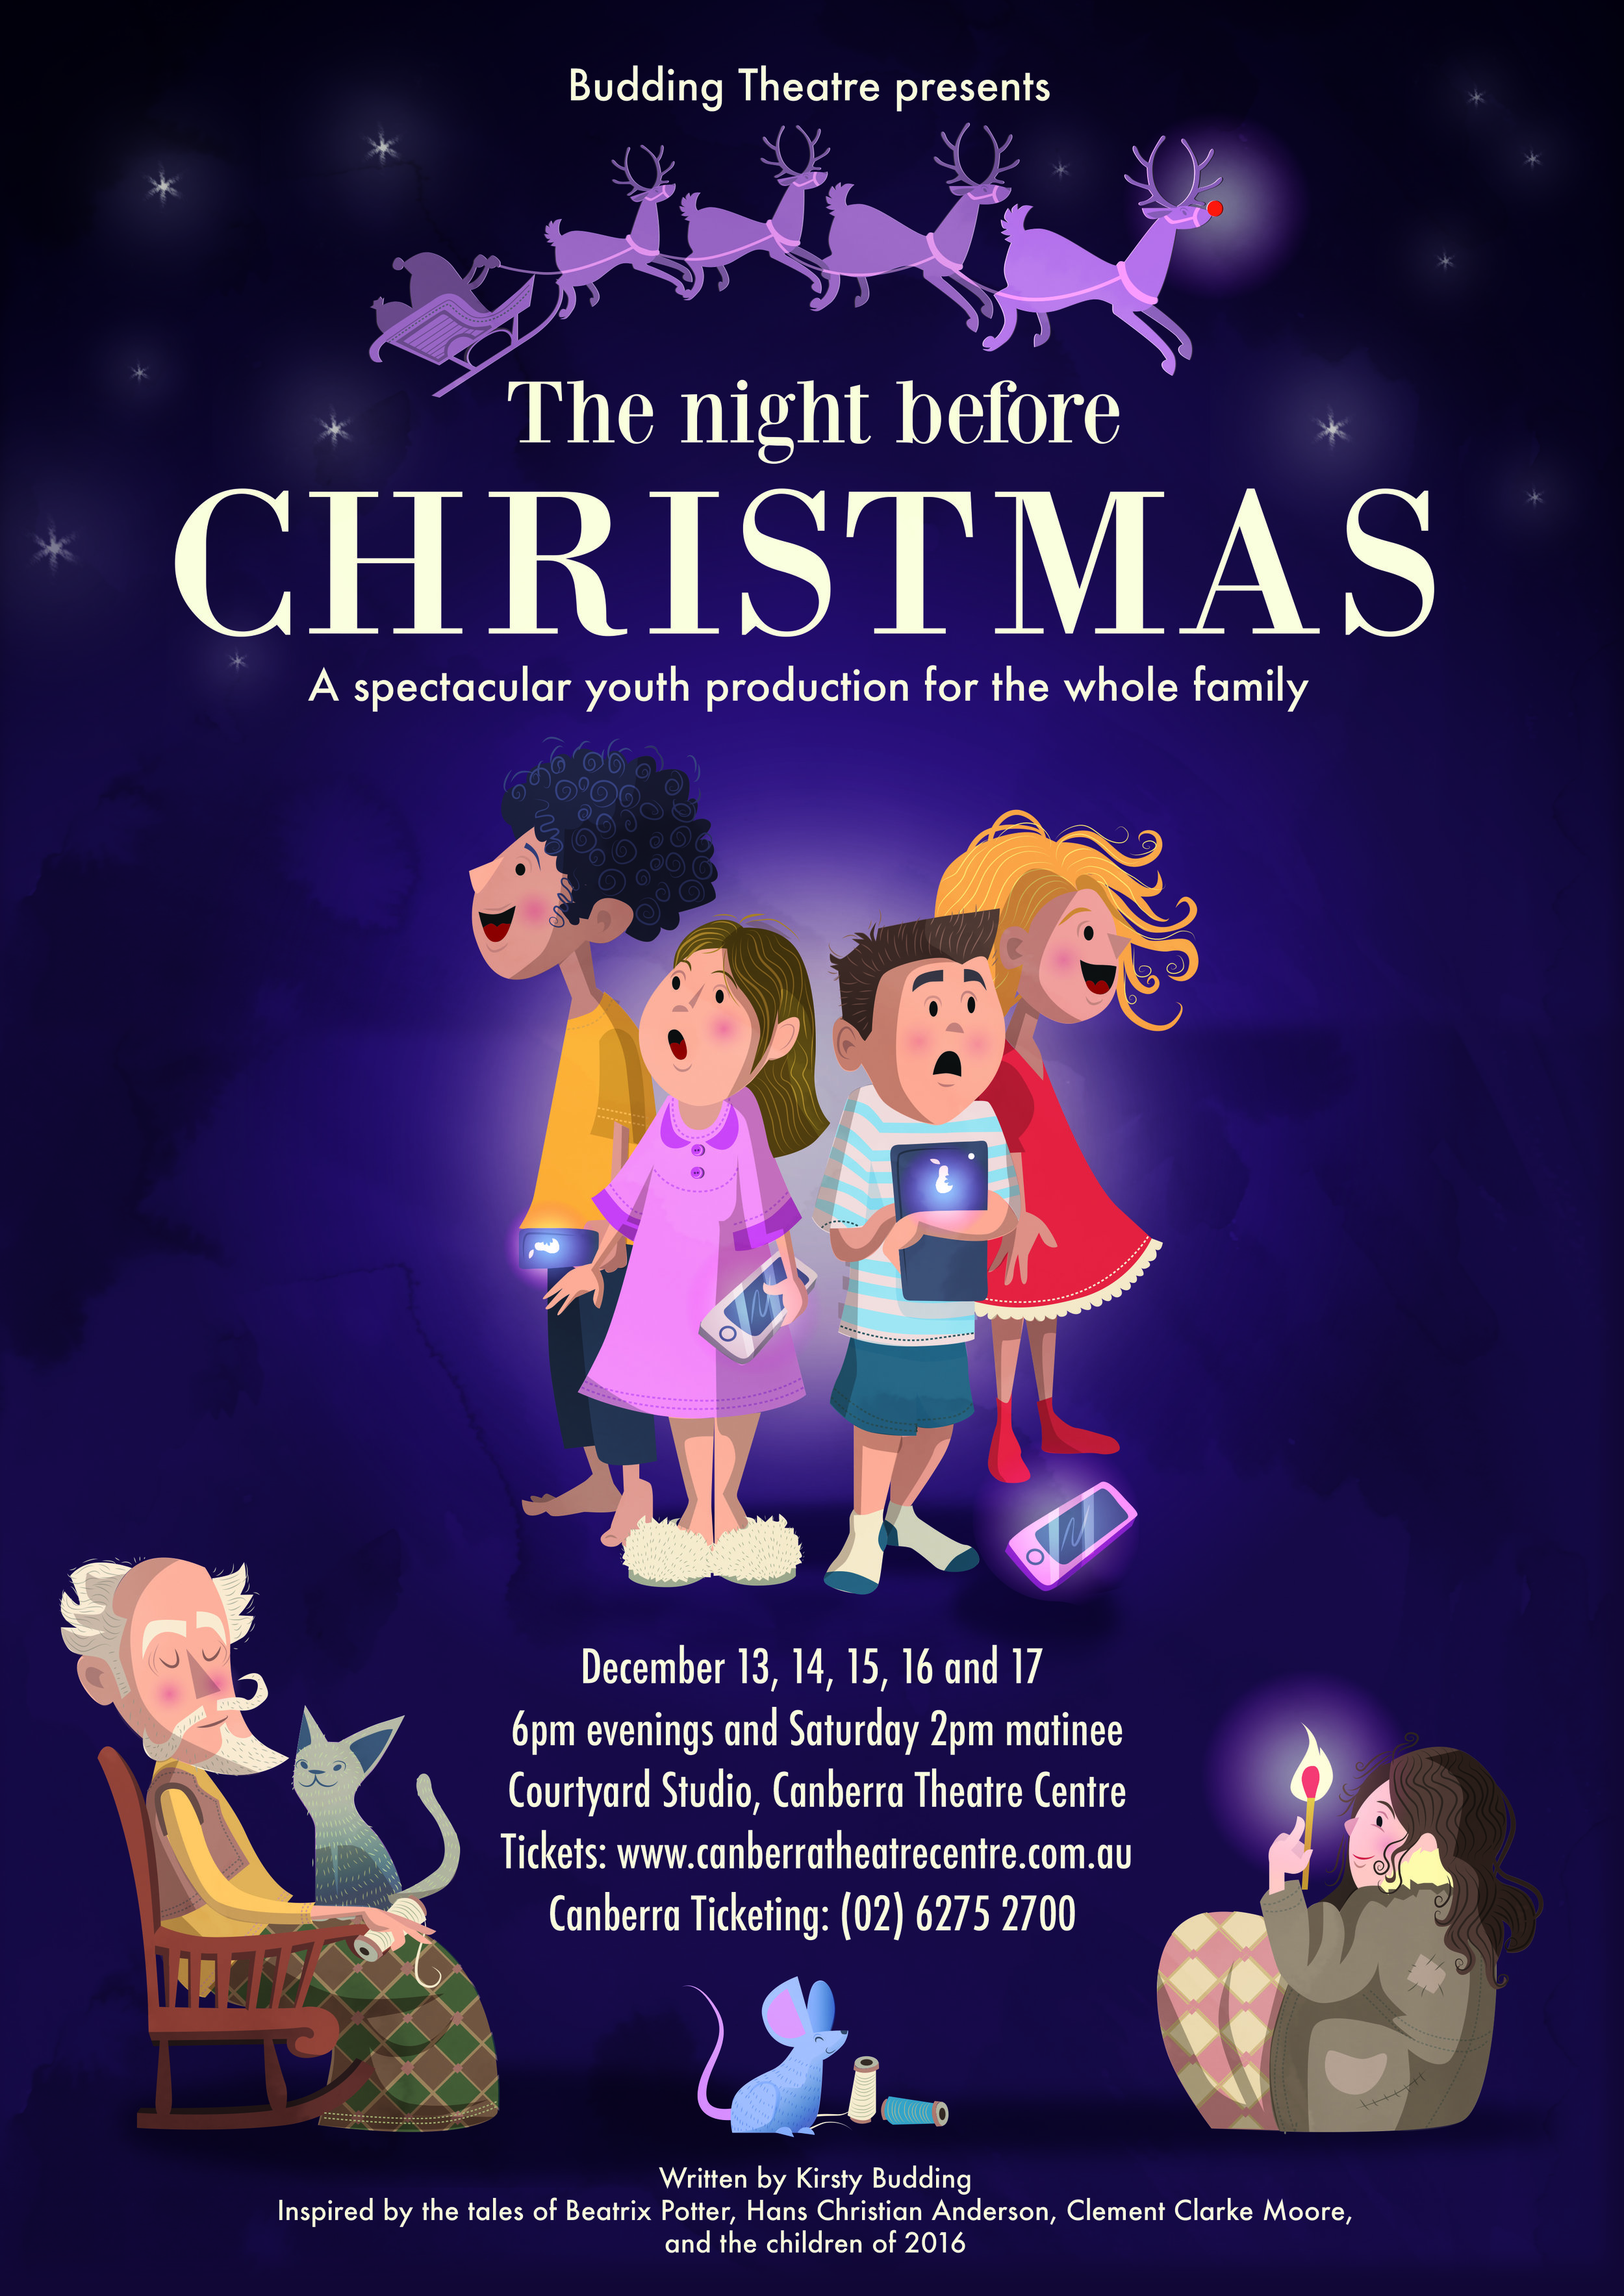 The Night Before Christmas Budding Theatre Kirsty Budding 2016 Canberra youth theatre